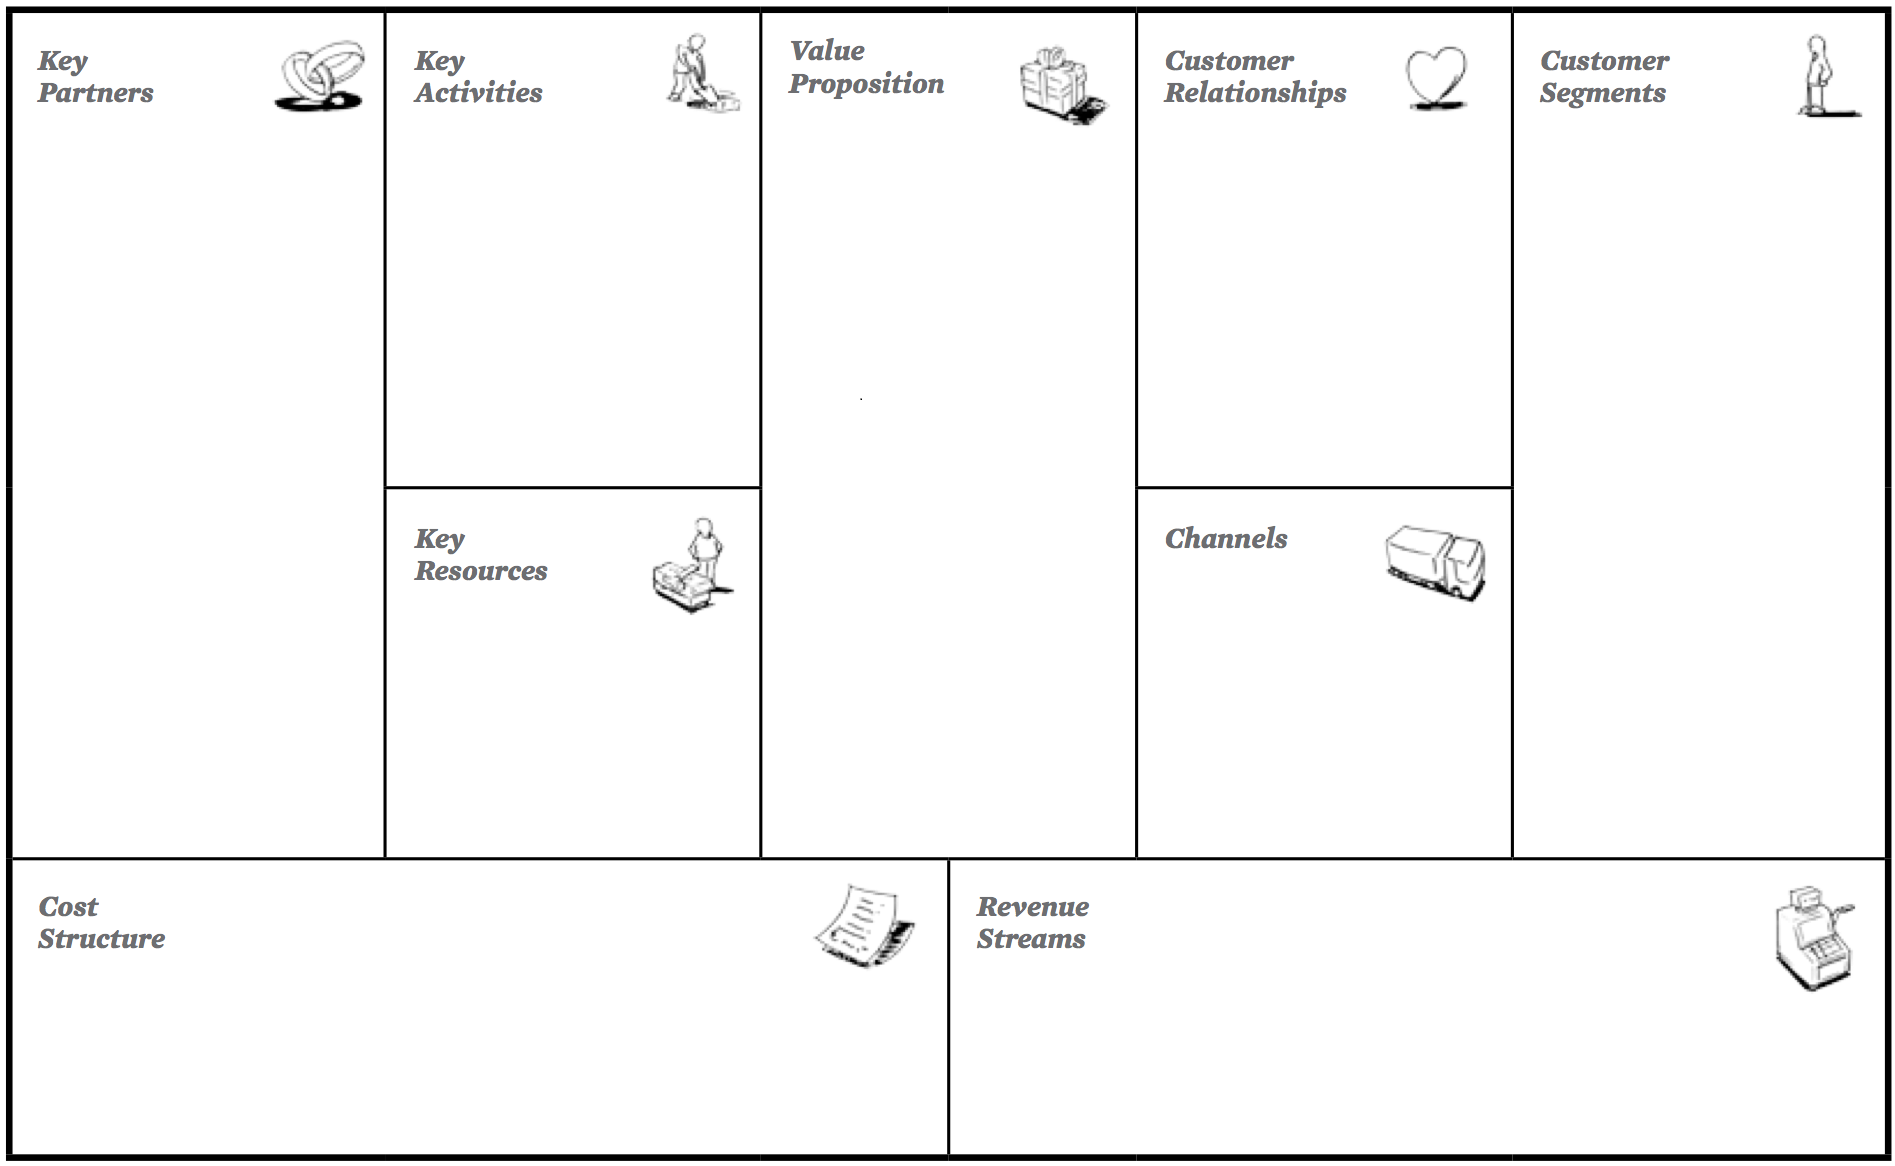 9 boxes arranged in a rectangle. each box conforms to one area of business that a startup needs to figure out. The boxes are labeled Key Partners, Key Activities, Key Resources, Value Proposition, Customer Relationships, Channels, Customer Segments, Cost Structure, and Revenue Streams